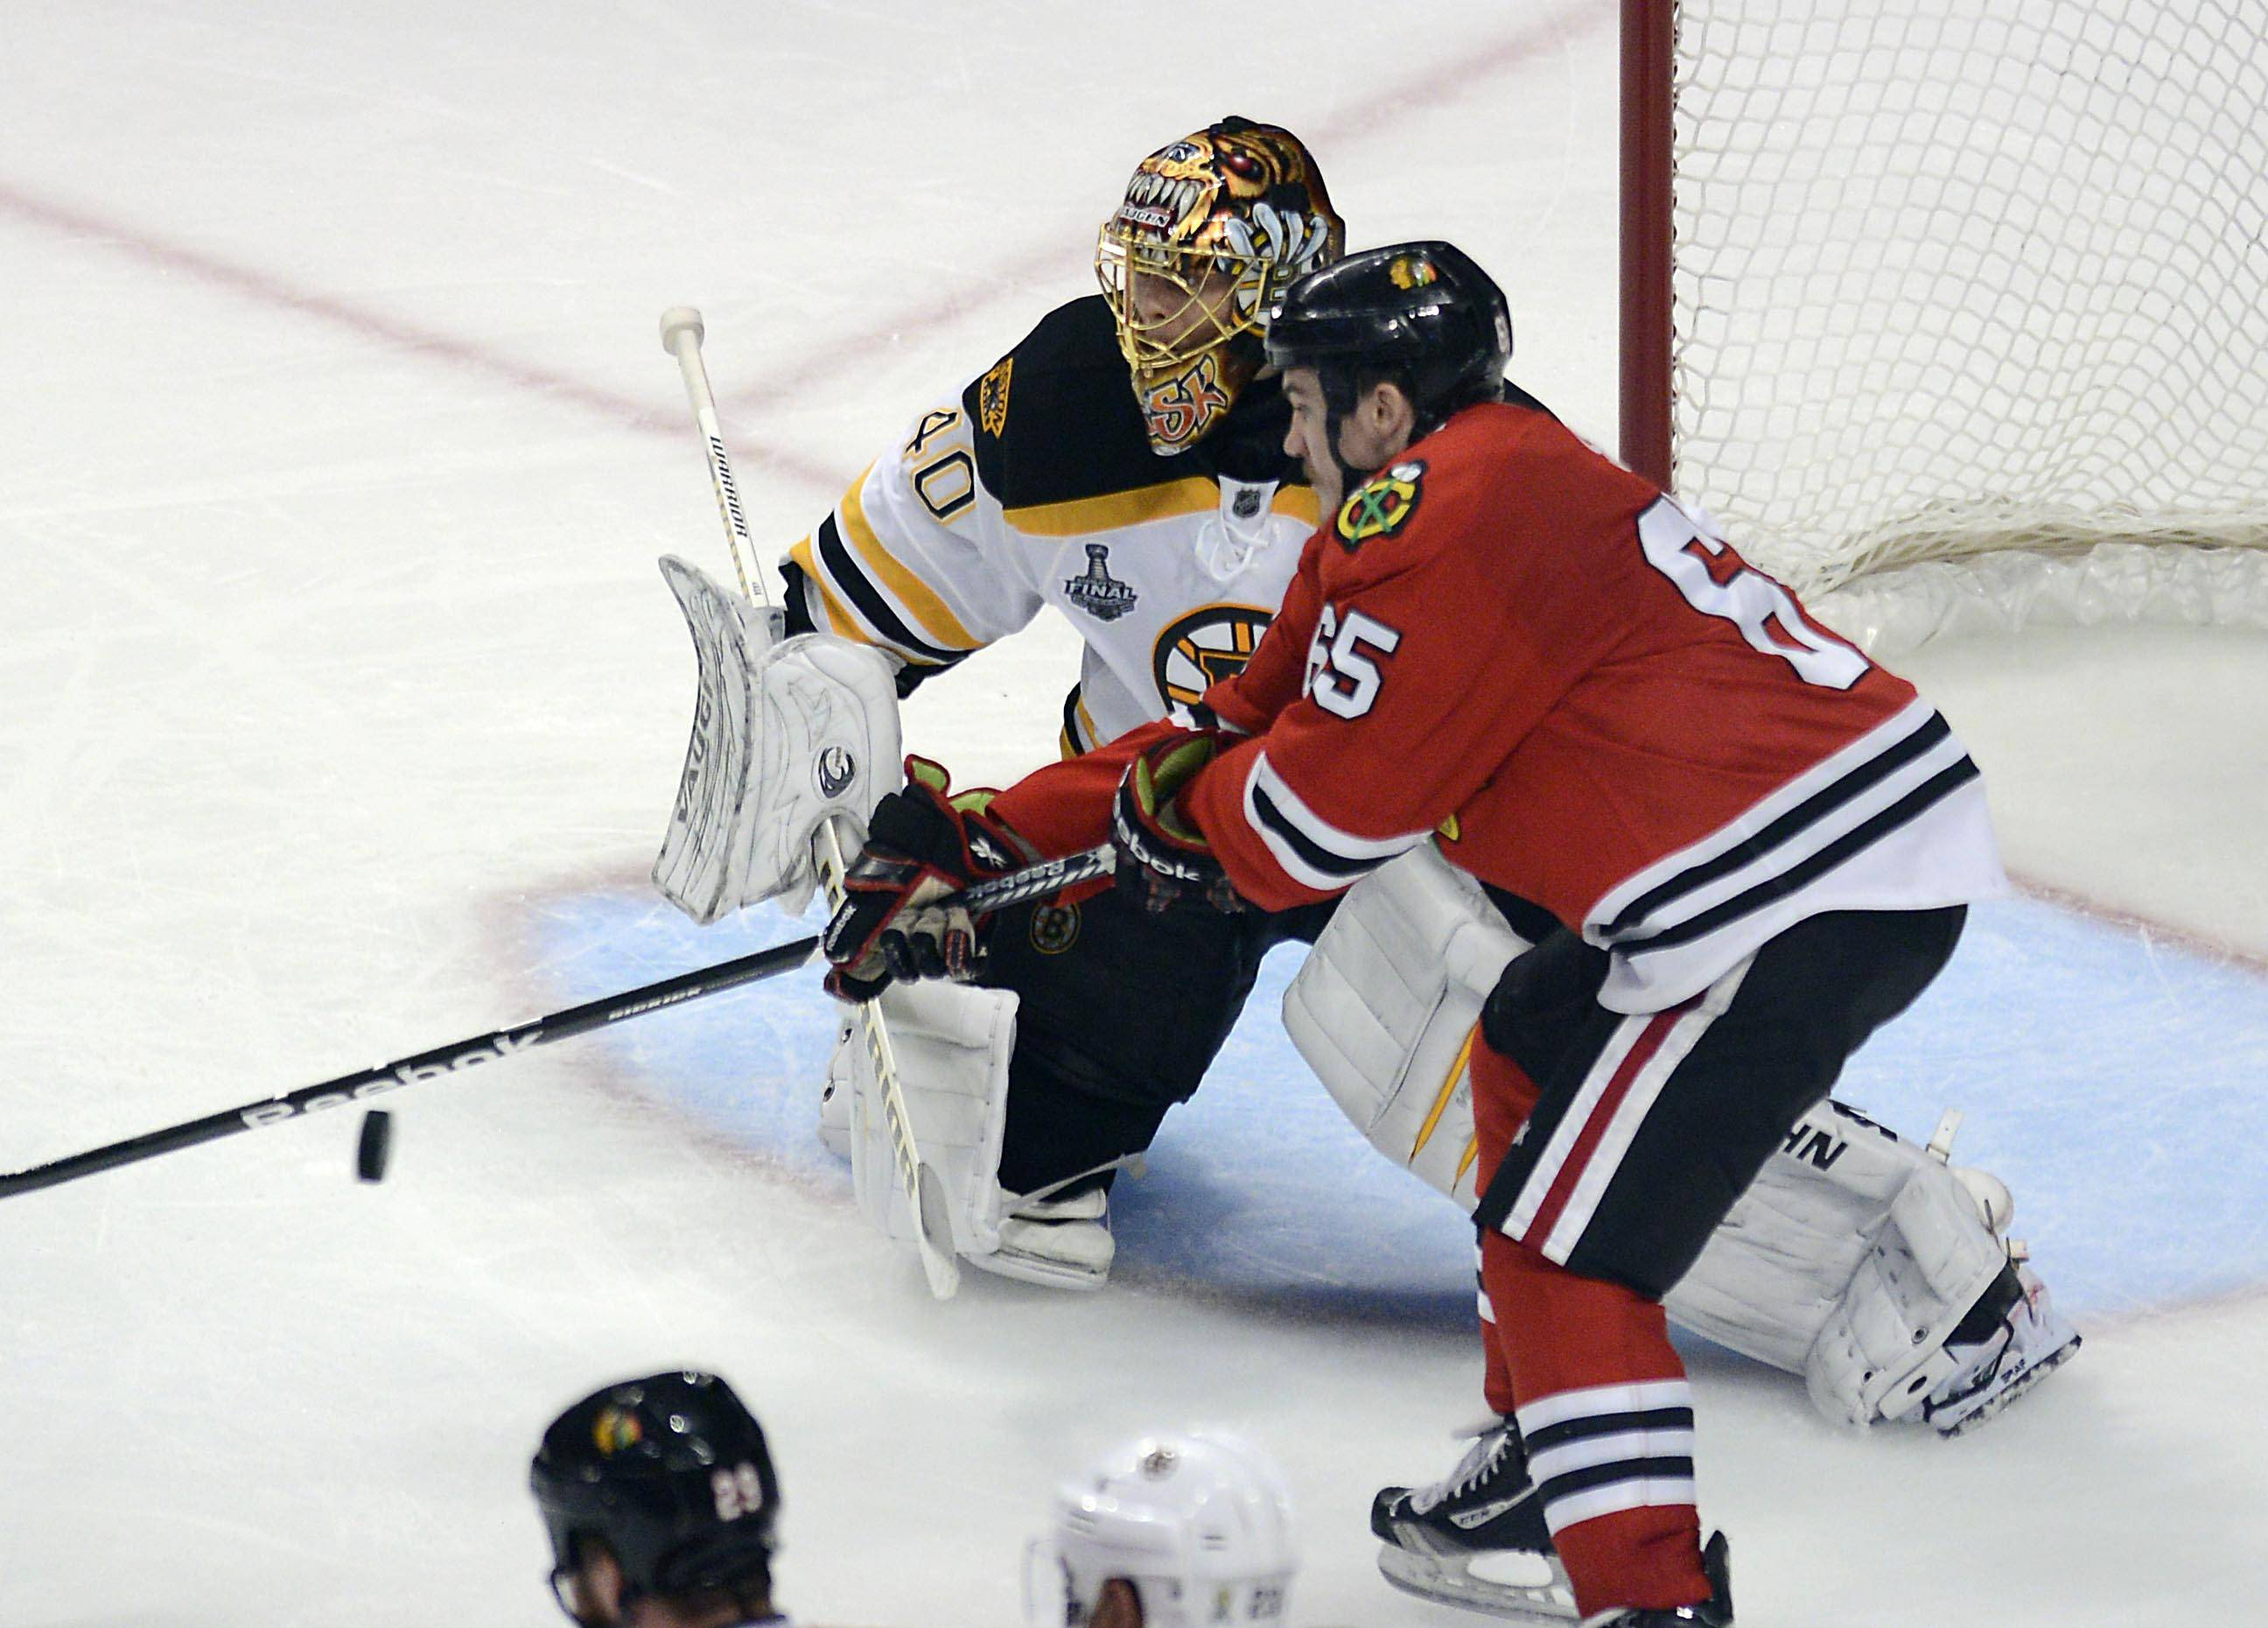 Chicago Blackhawks center Andrew Shaw deflects a shot past Boston Bruins goalie Tuukka Rask for the game winner in the third overtime during Game 1 of the Stanley Cup Finals Wednesday at the Untied Center in Chicago.